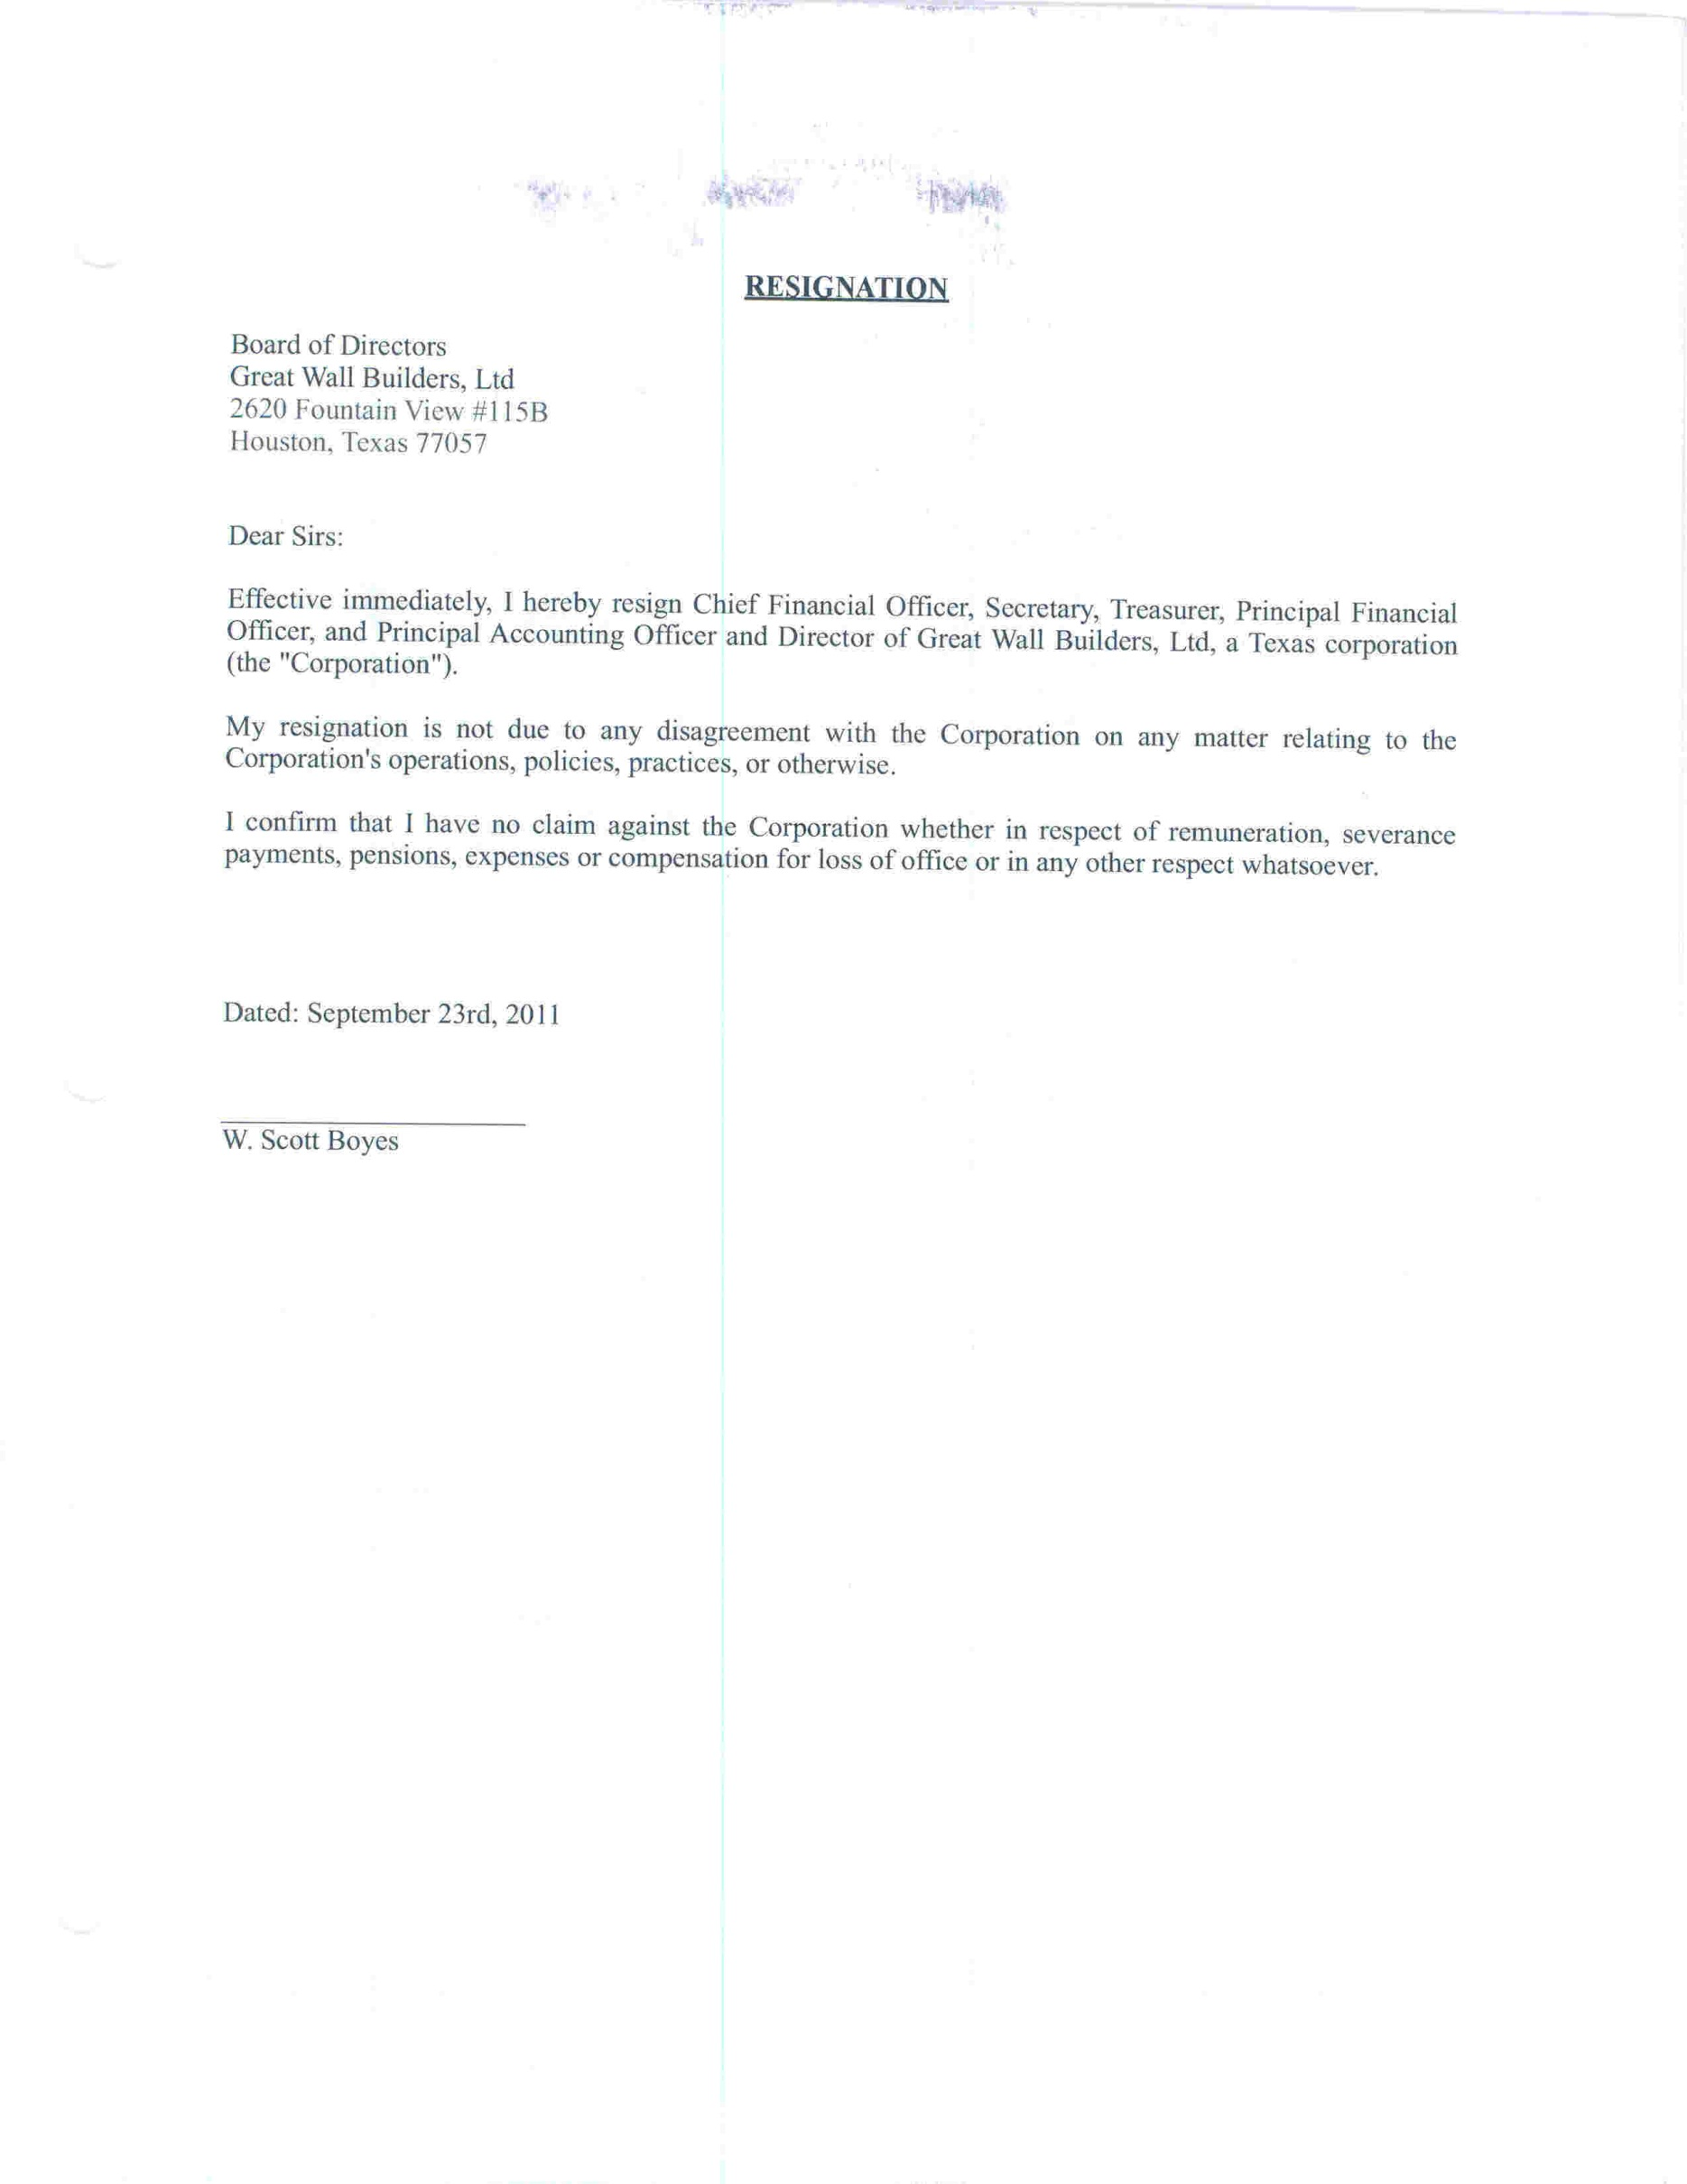 FORM 8-K - EX-99 - RESIGNATION